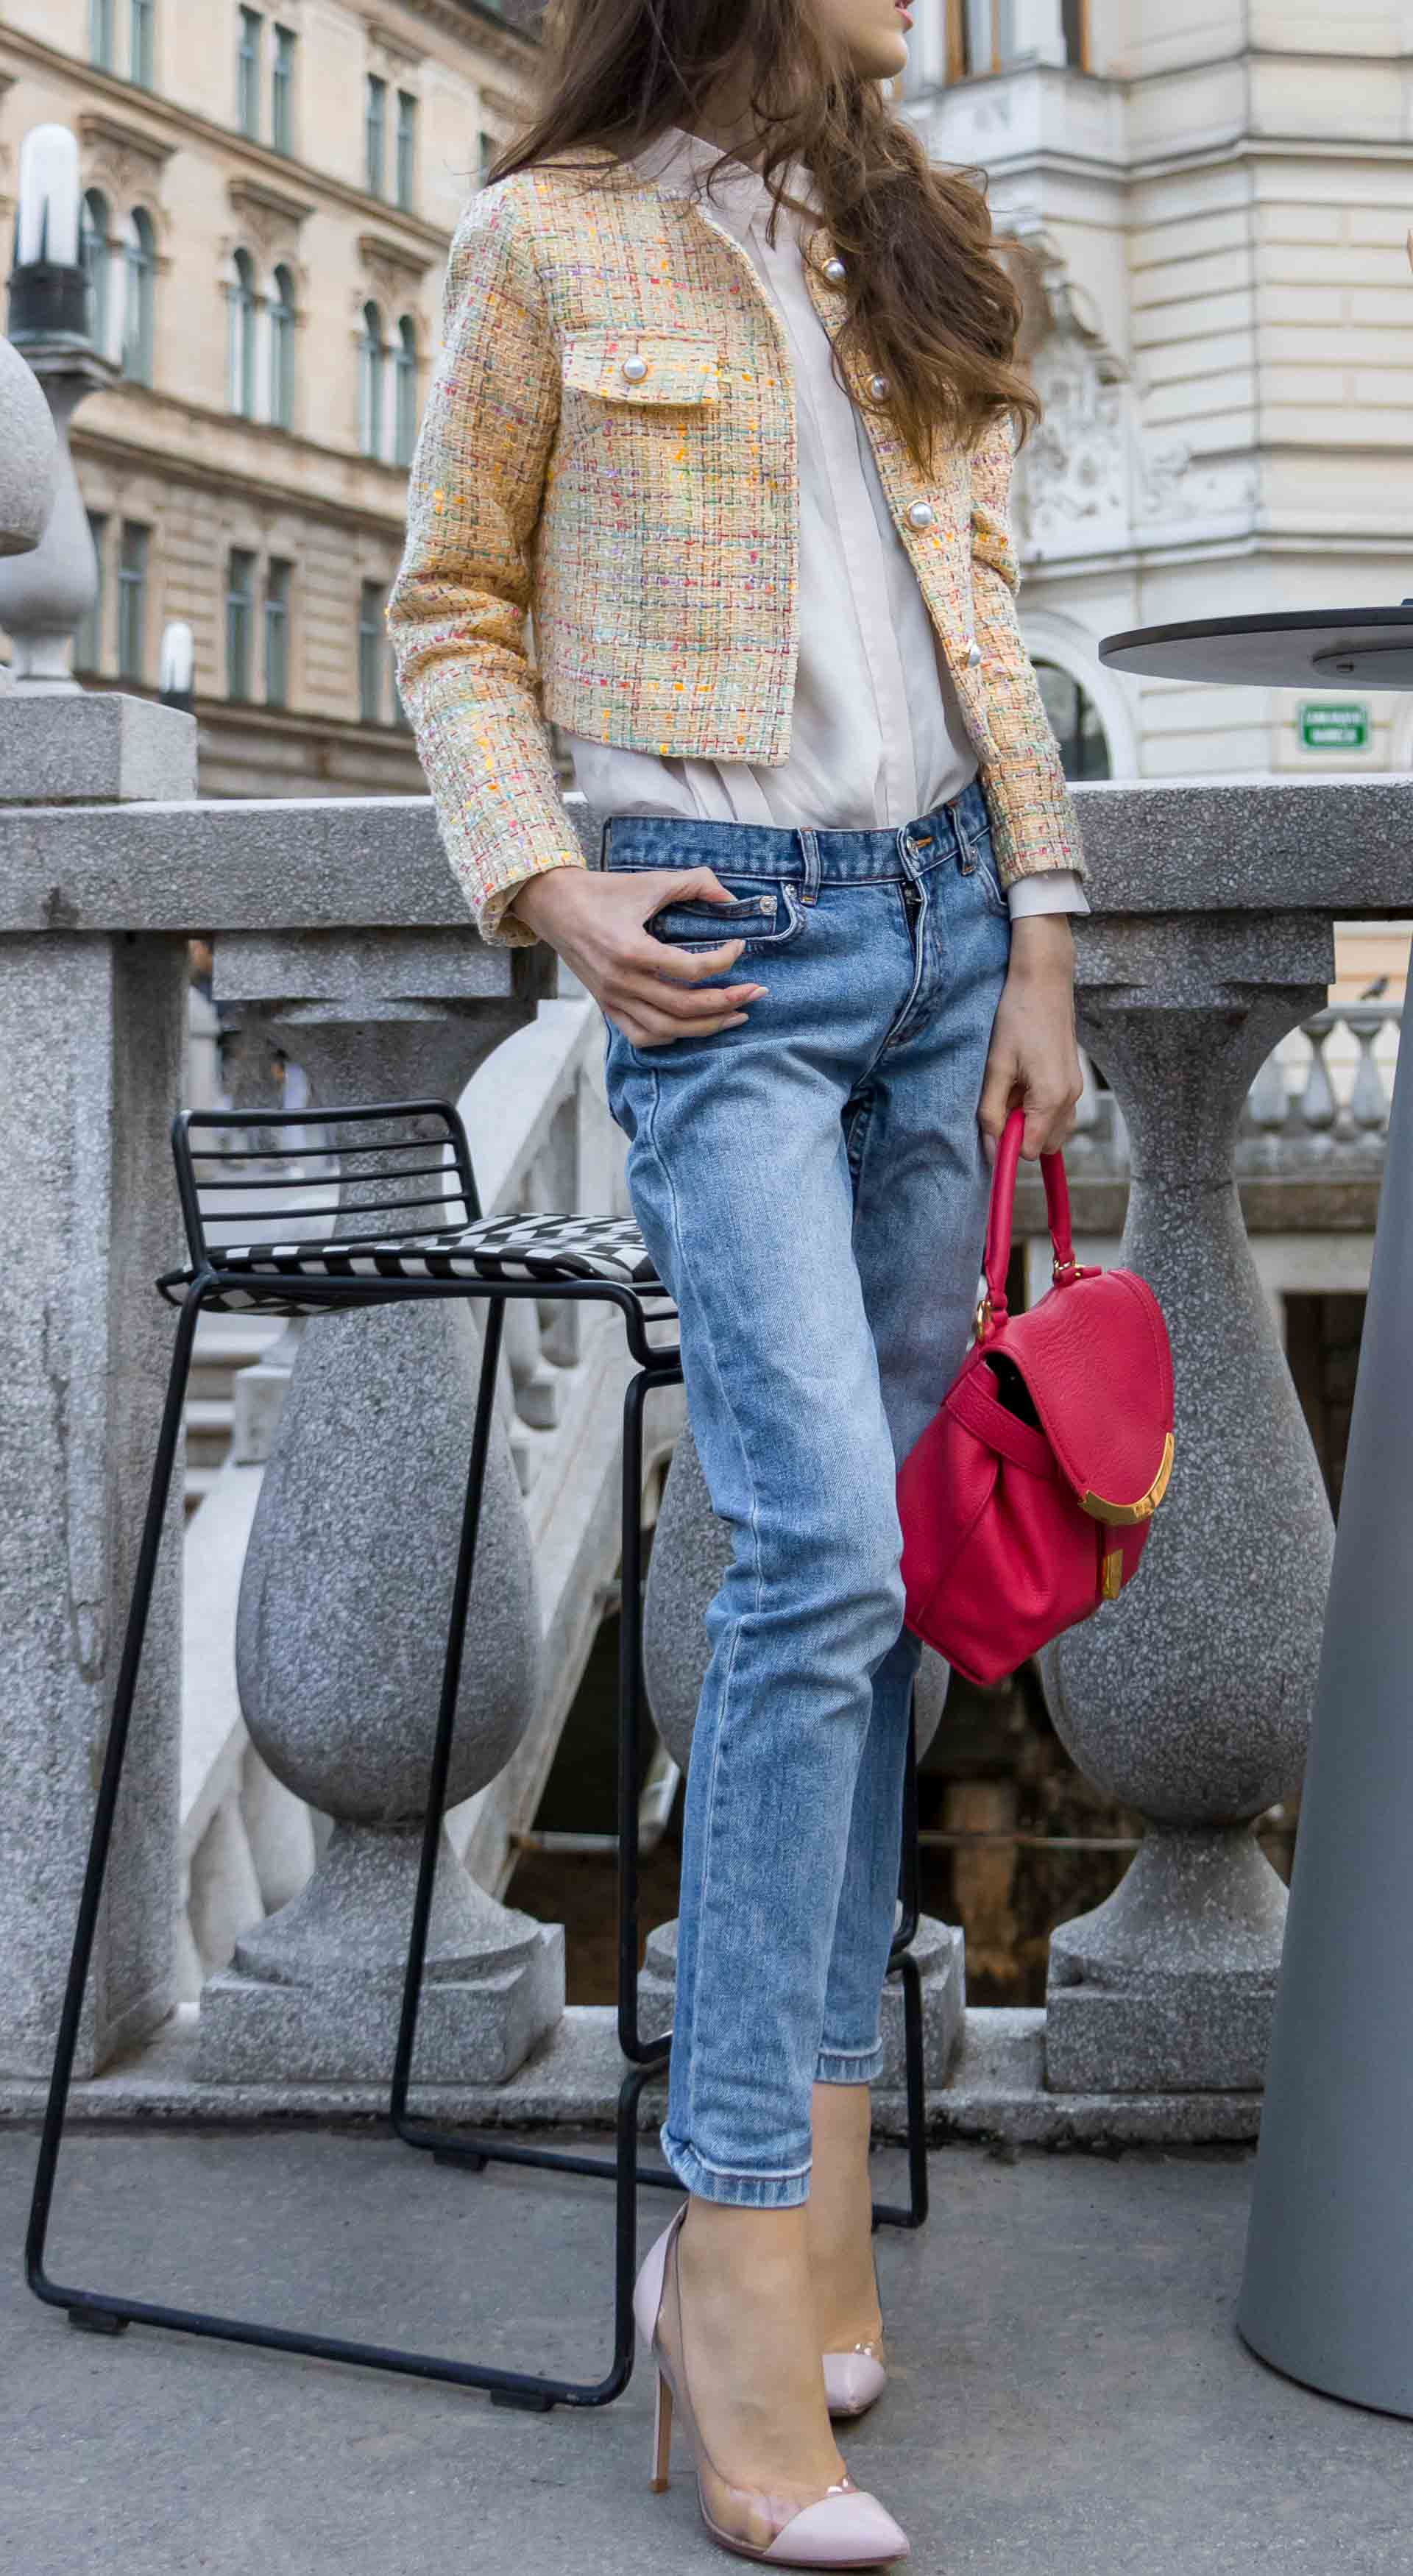 Veronika Lipar Fashion Blogger of Brunette from Wall Street wearing chic casual everyday spring outfit, the yellow tweed jacket from Storets, blue jeans from A.P.C., blush Gianvito Rossi plexi pumps, pink top handle bag and organza white shirt while standing by a bar stole outdoors